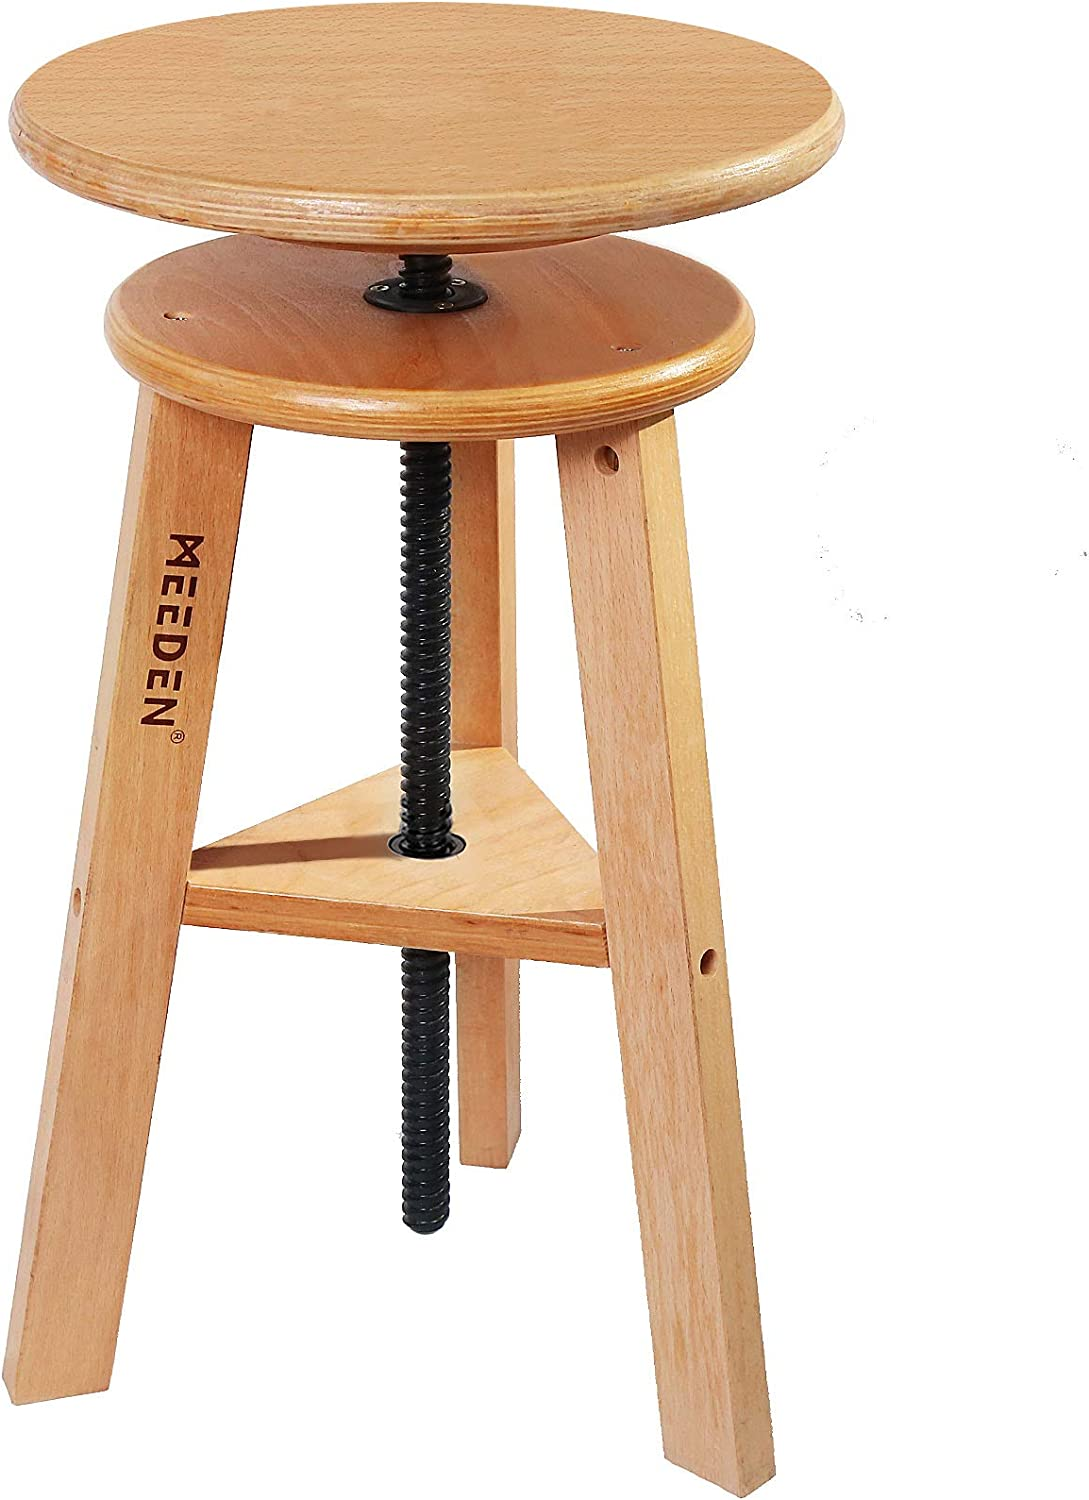 MEEDEN Wooded Drafting Stool with Adjustable Height,Artist Stool,Wood Bar Stool,Kitchen Stool,Perfect for Artists Studio,Home Use,Kitchen,Bars